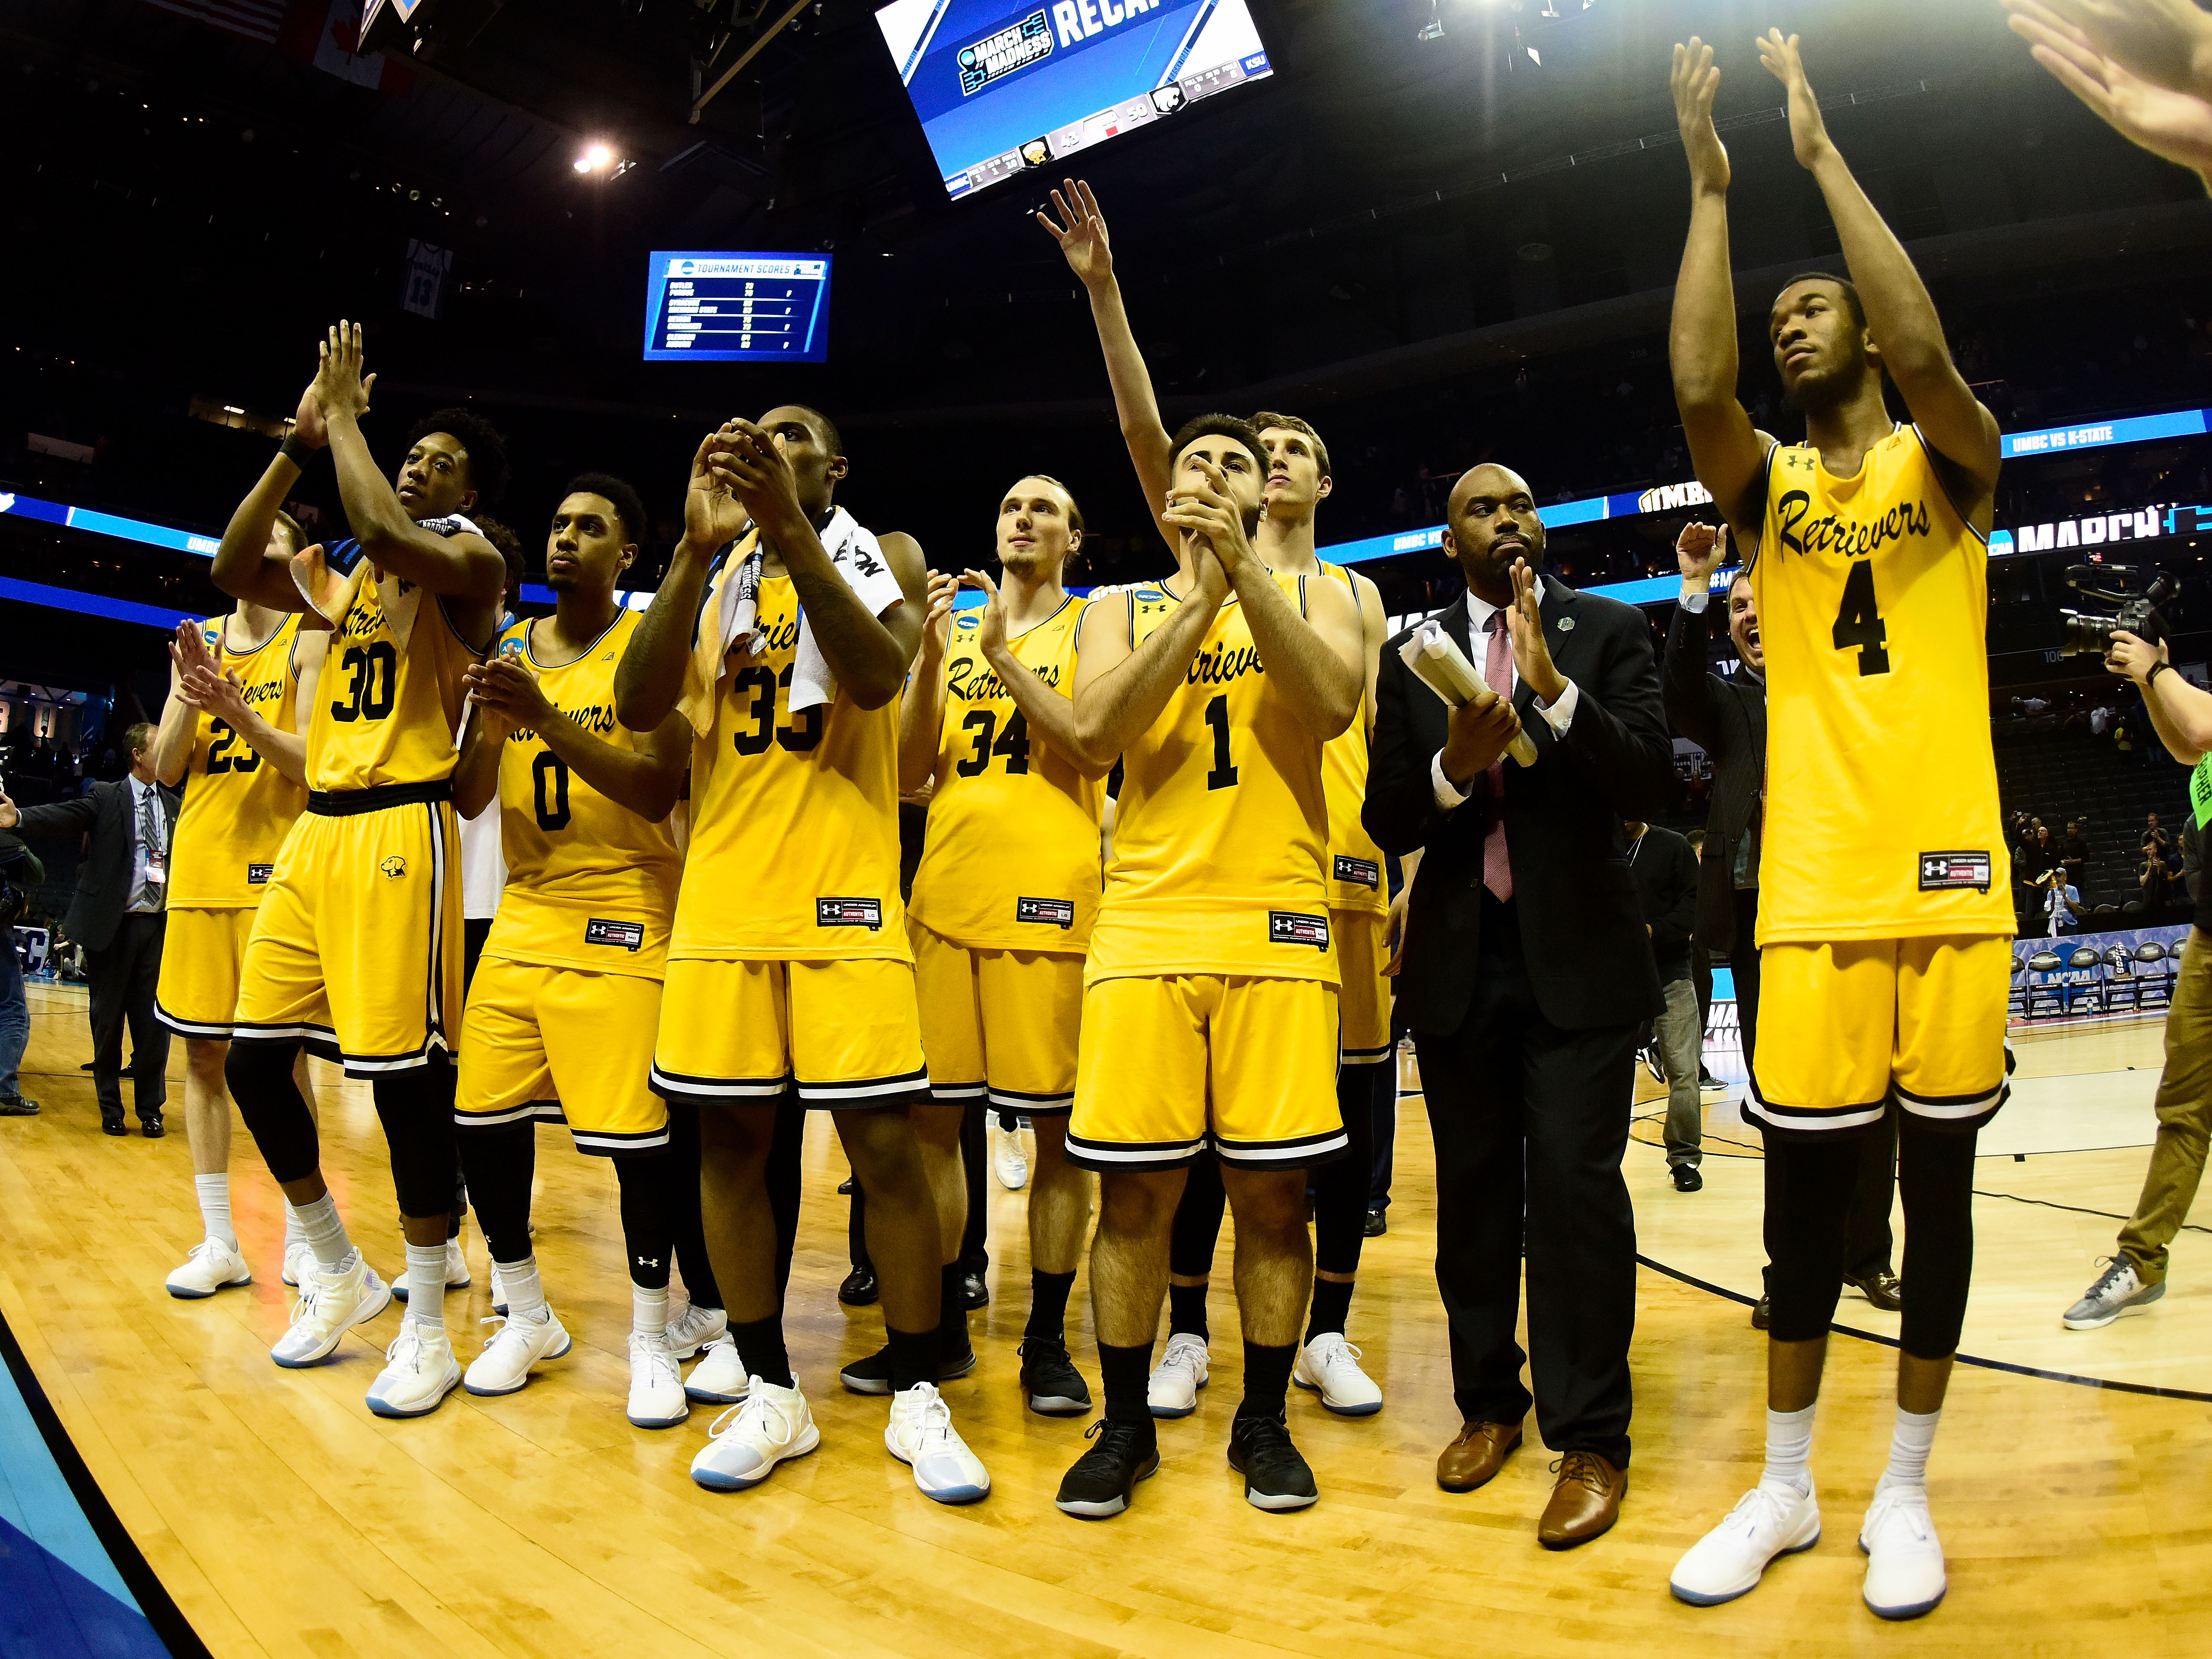 UMBC team claps on basketball court after loss to Kansas State